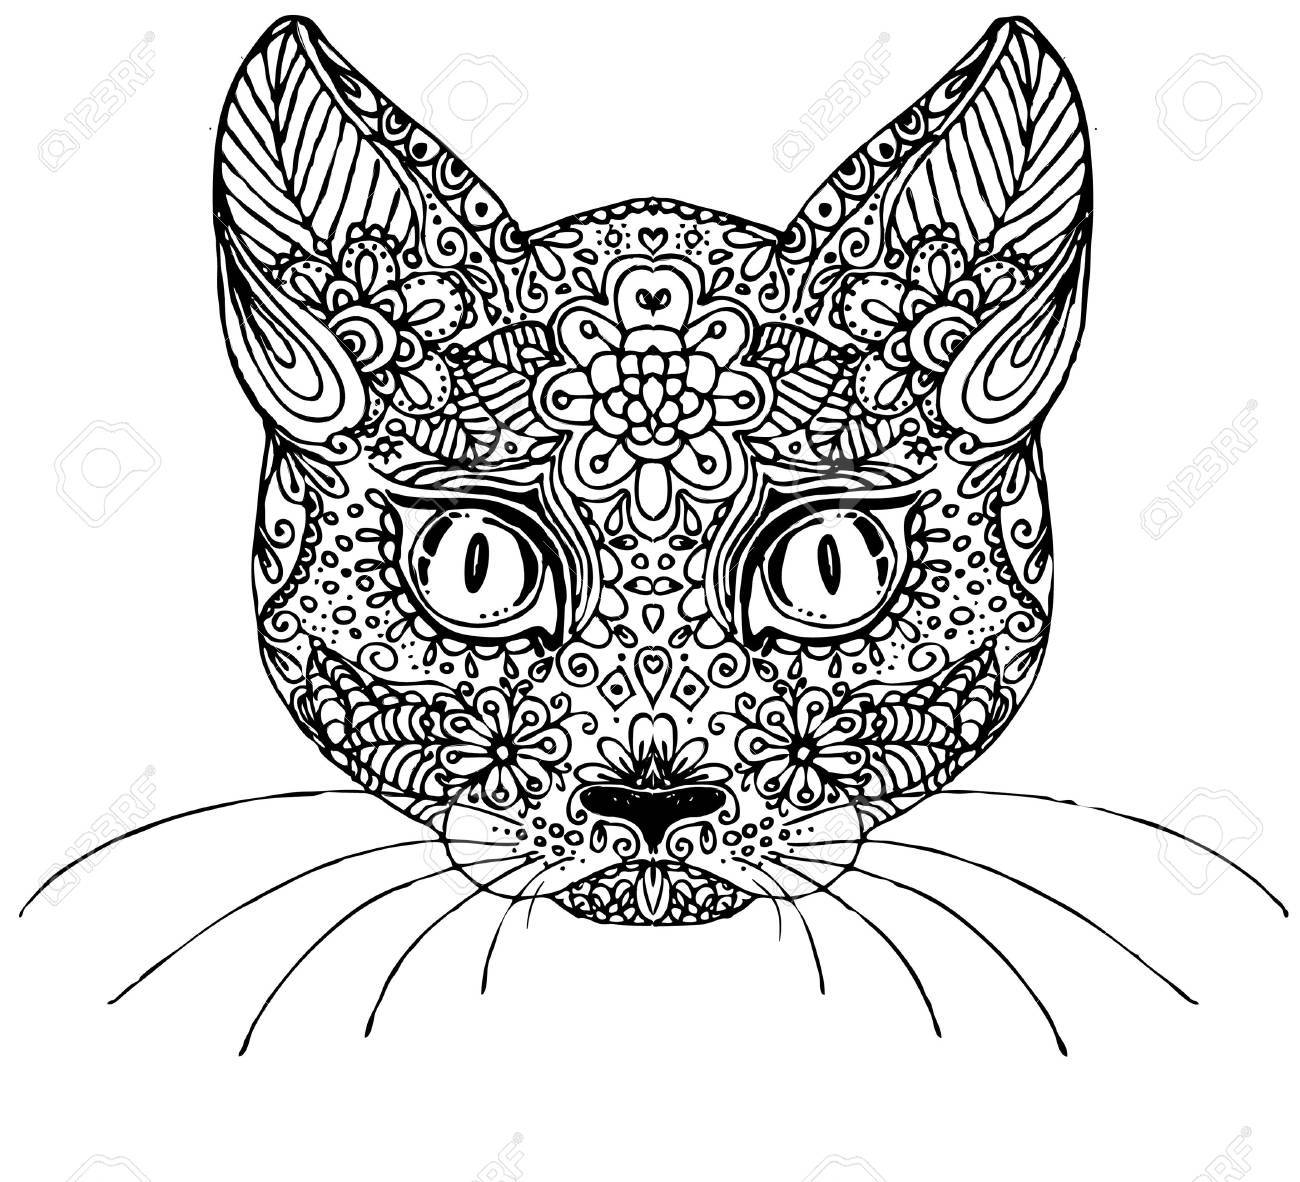 1300x1182 Hand Drawn Doodle Cat. Sketch For Adult Antistress Coloring Page